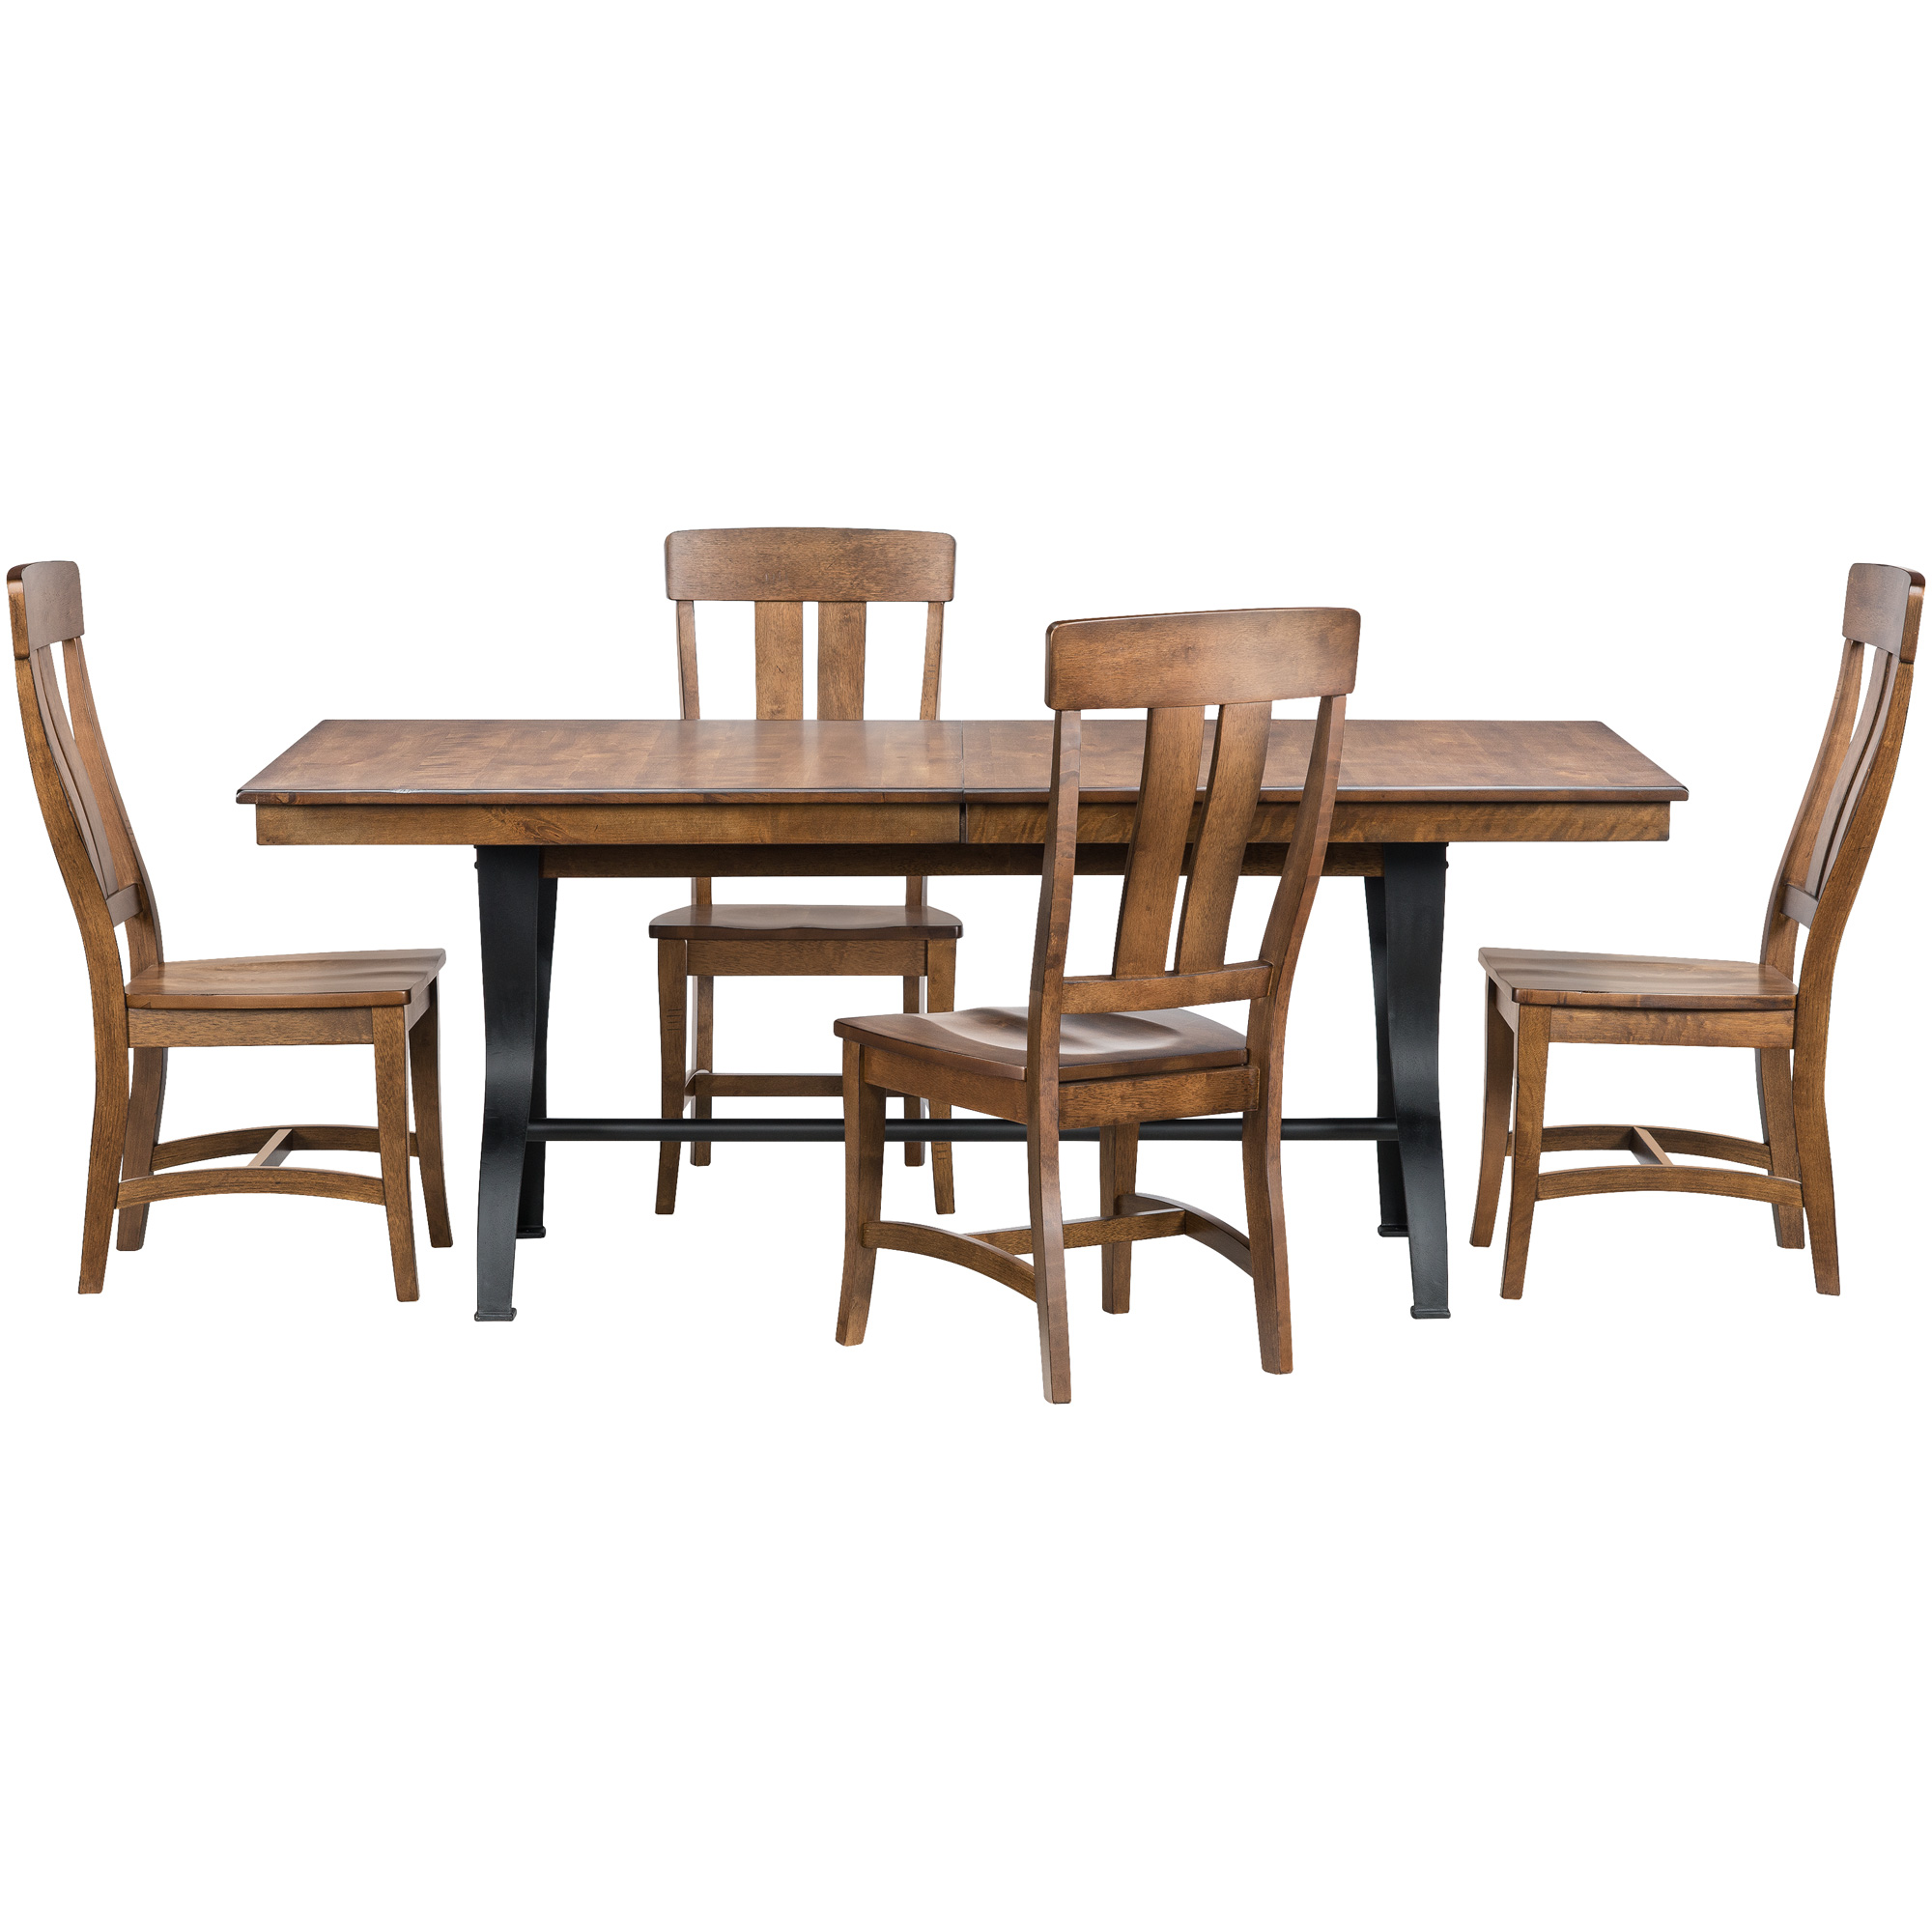 Intercon | District Copper 5 Piece Dining Set